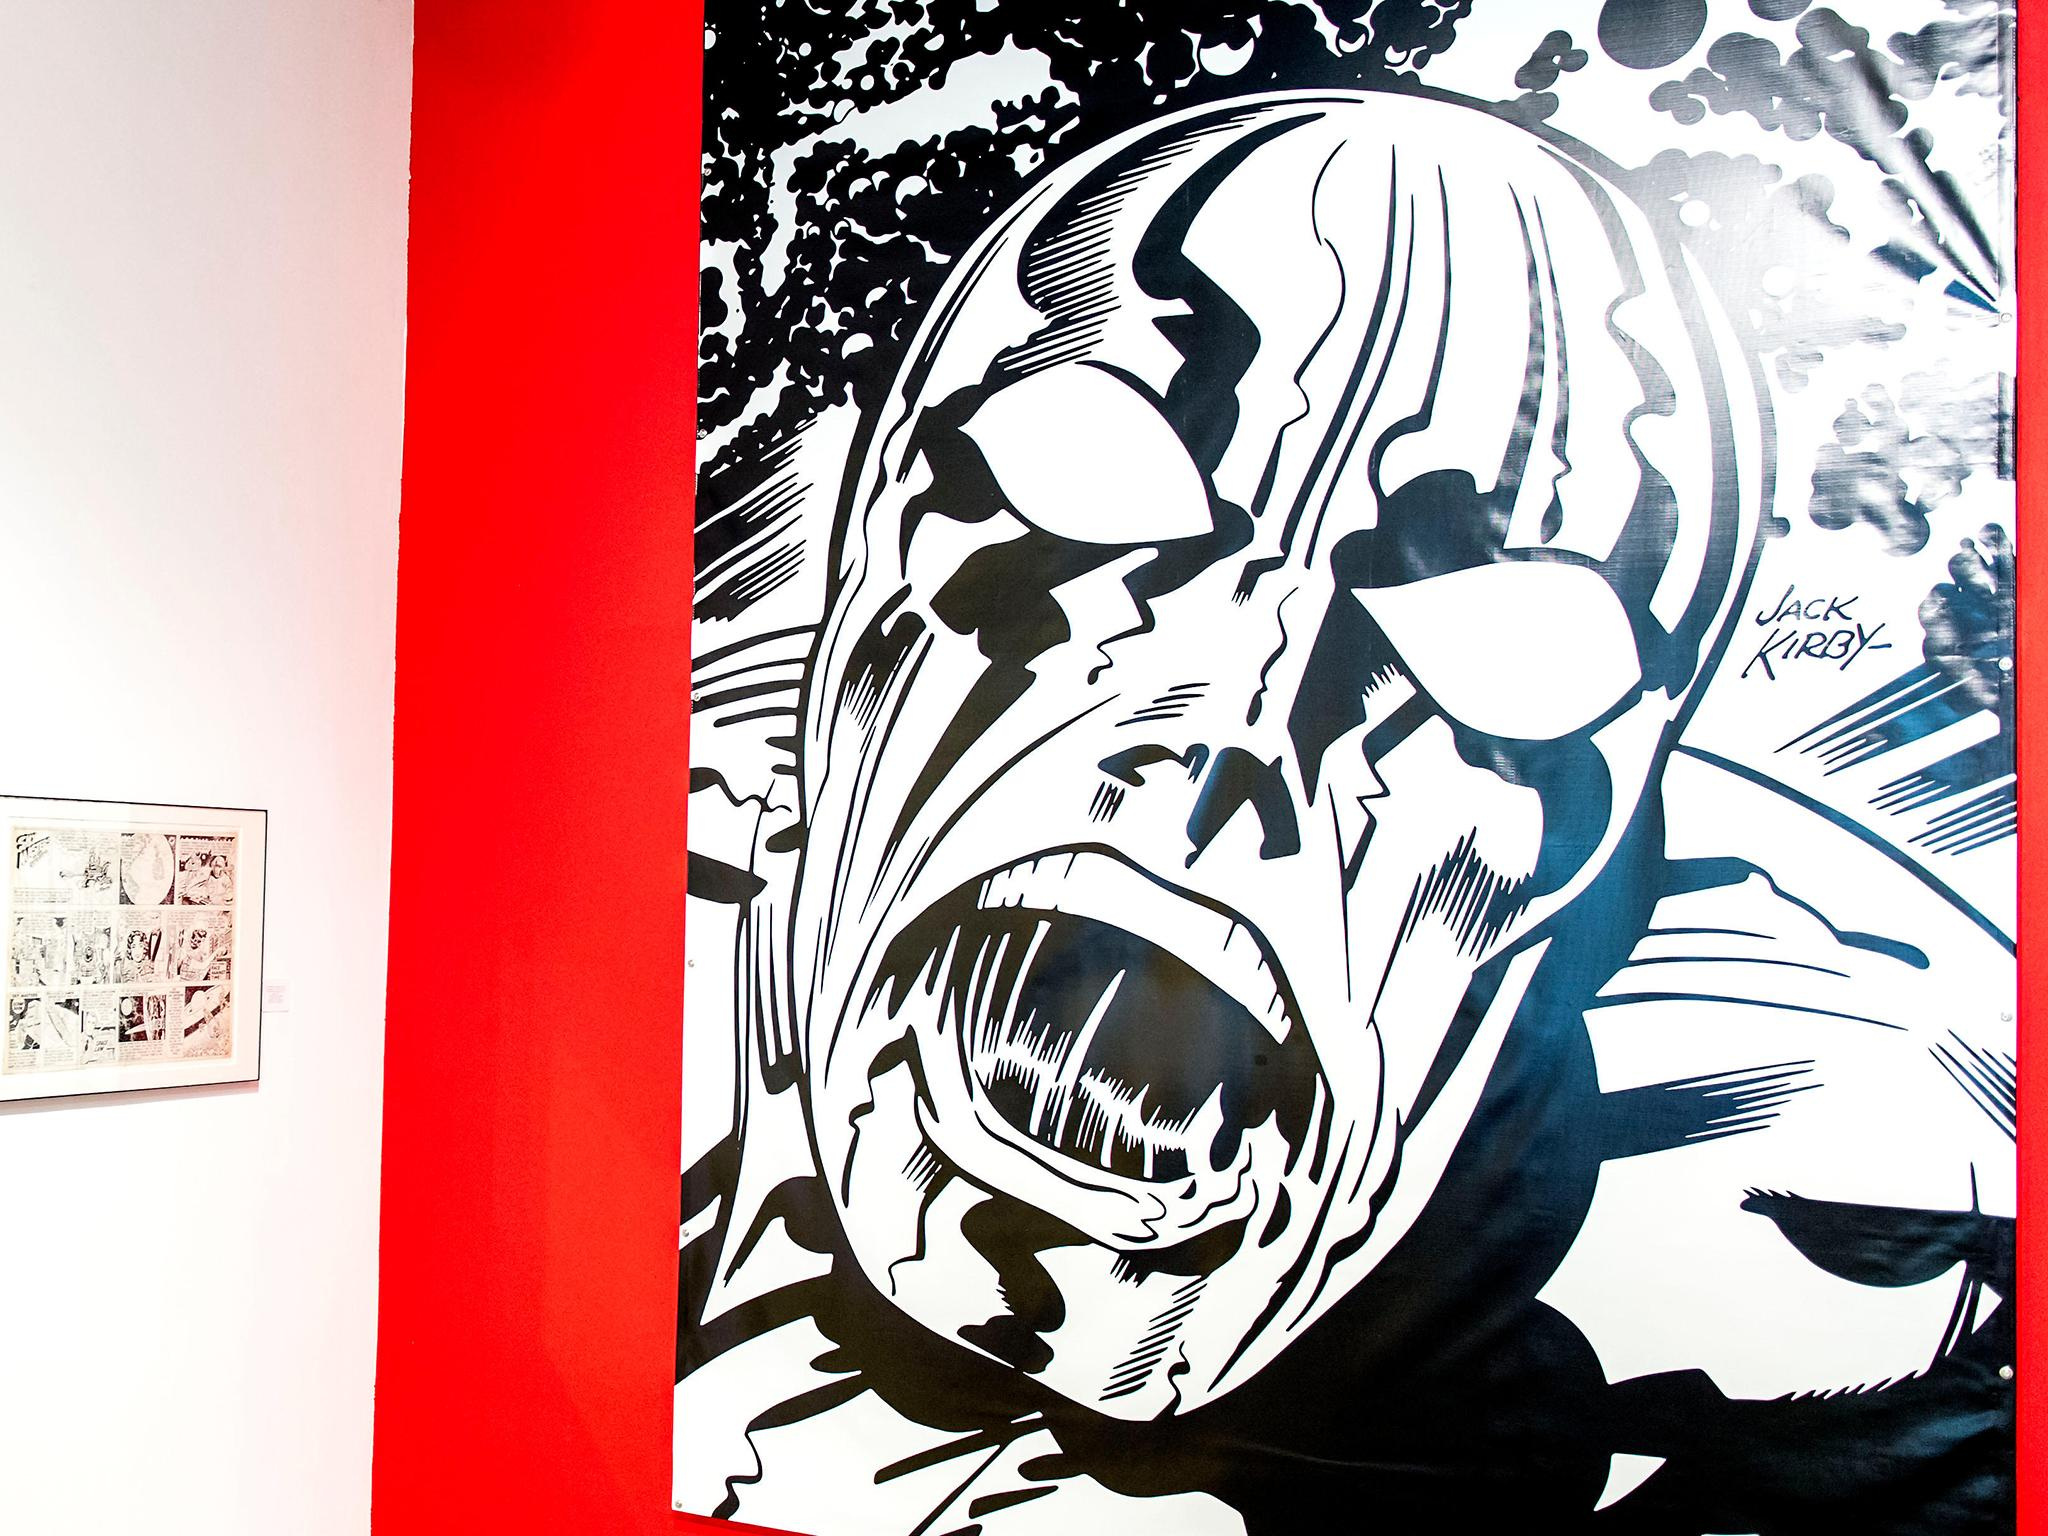 Jack Kirby: The comic book artist finally gets the